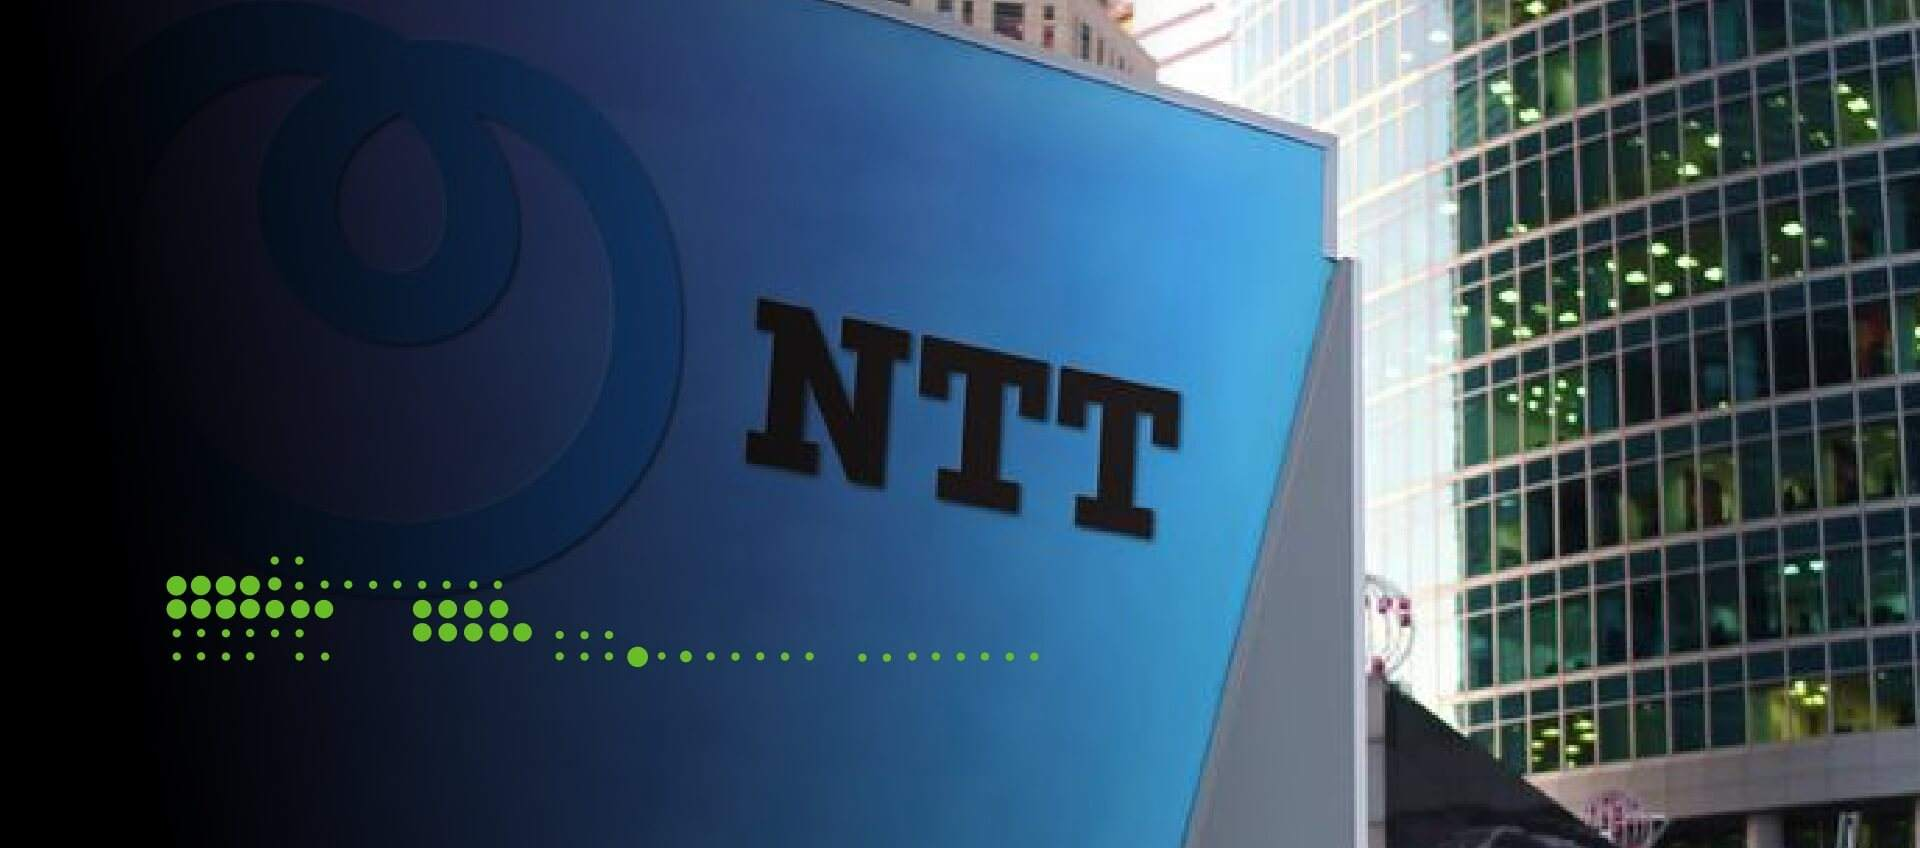 Brand unveiled for new NTT global operating company